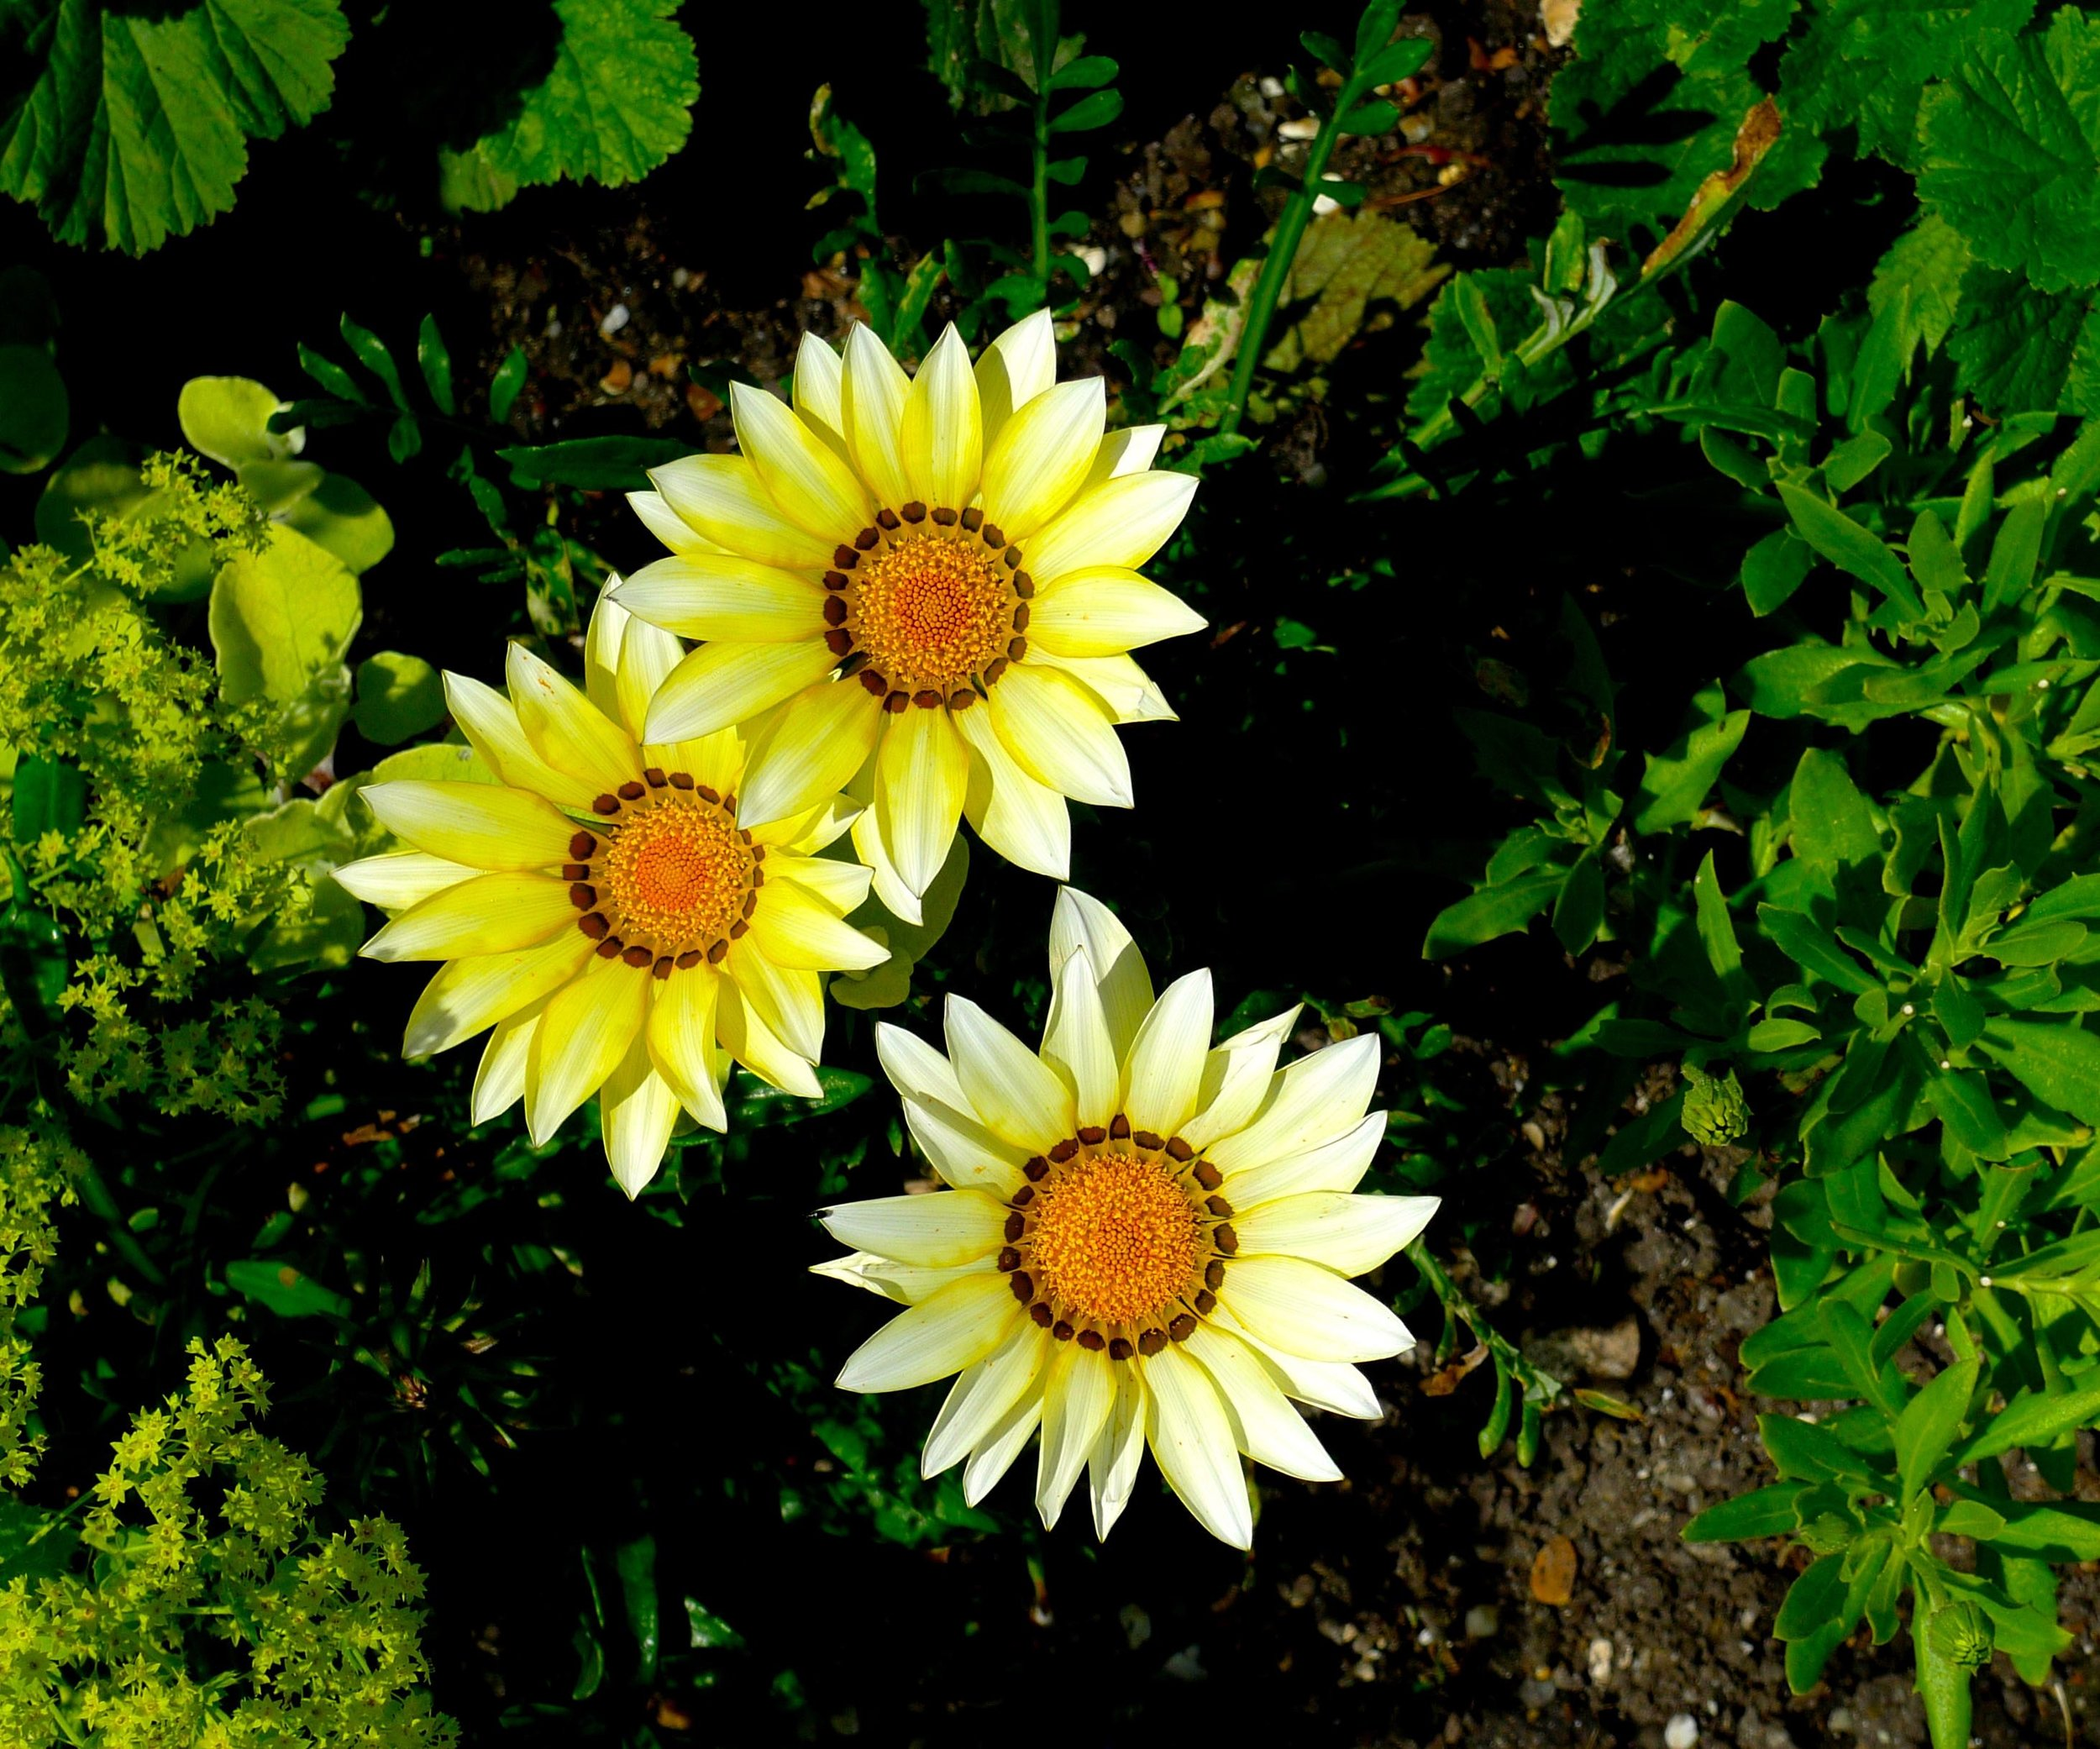 And I couldn't leave some yellow flowers out of my looking down focused post now could I?